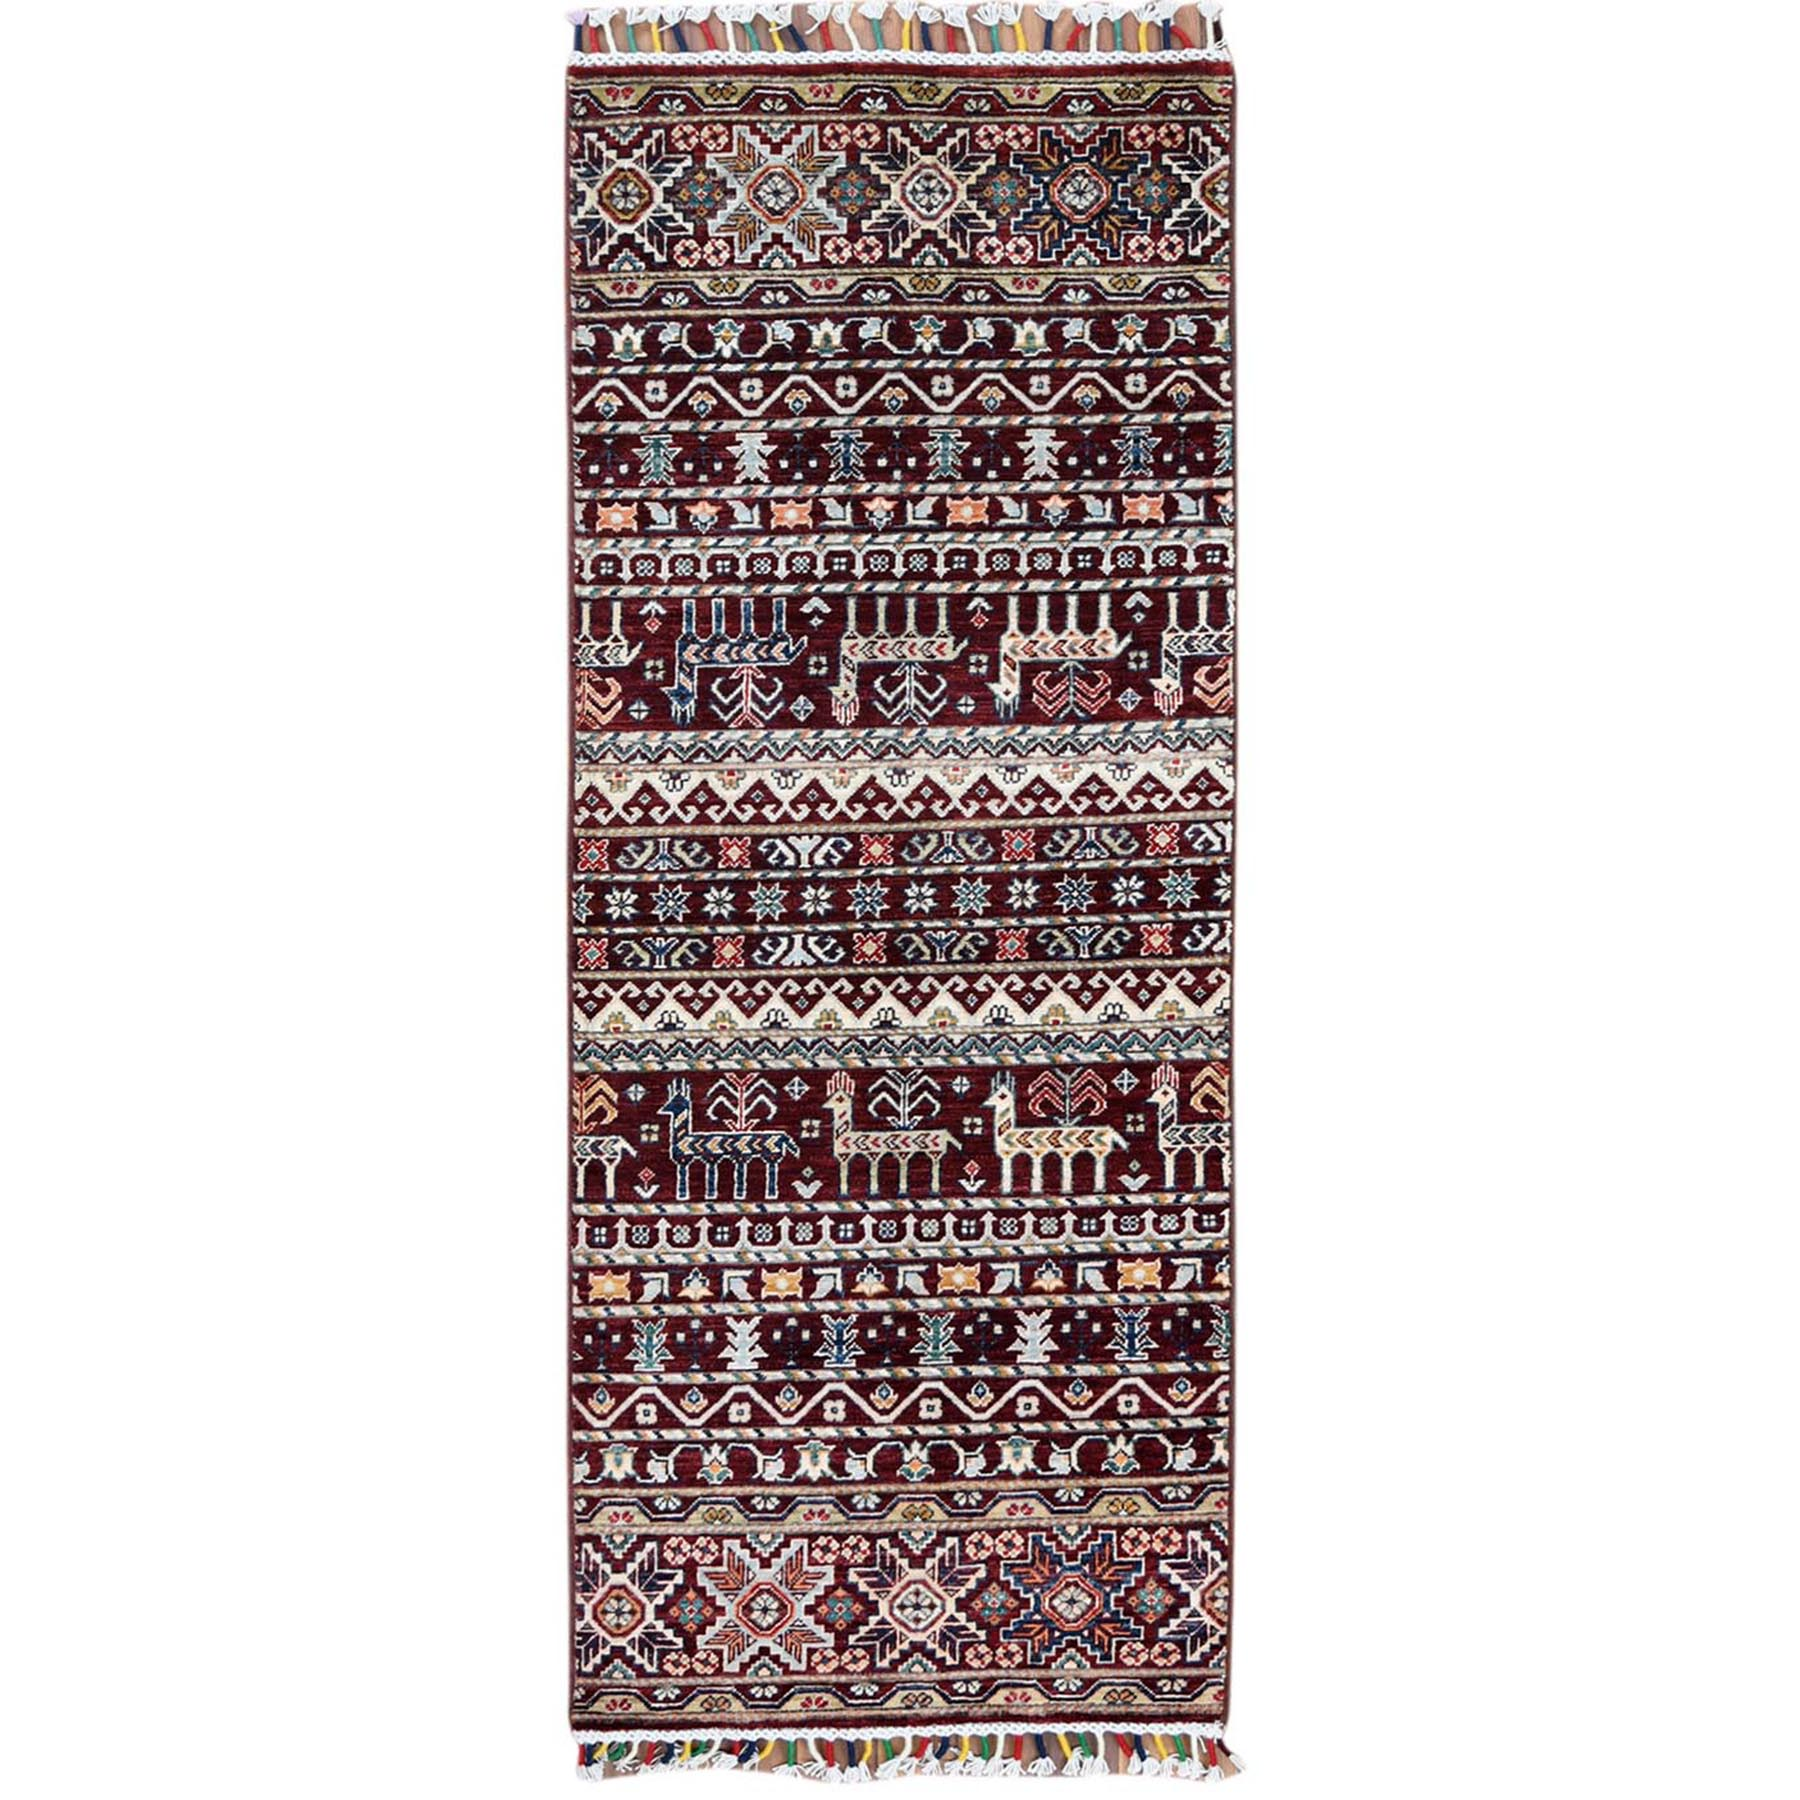 """2'5""""X6'3"""" Hand Knotted Red With Colorful Tassles Super Kazak Khorjin With Deers Design Pure Wool Oriental Runner Rug moa60bb9"""